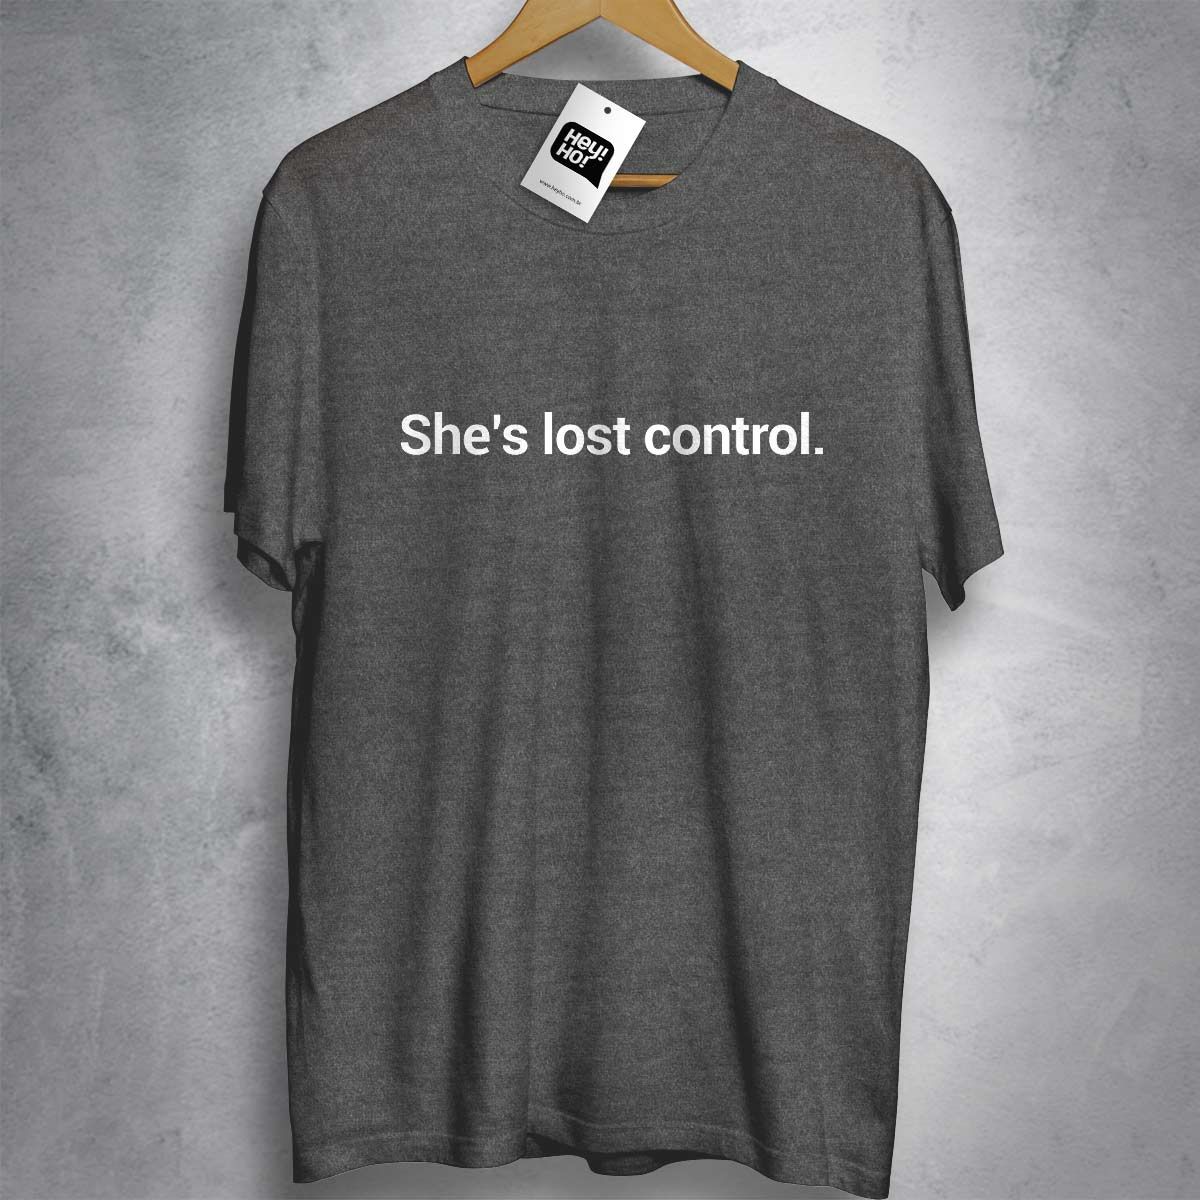 JOY DIVISION - She's lost control